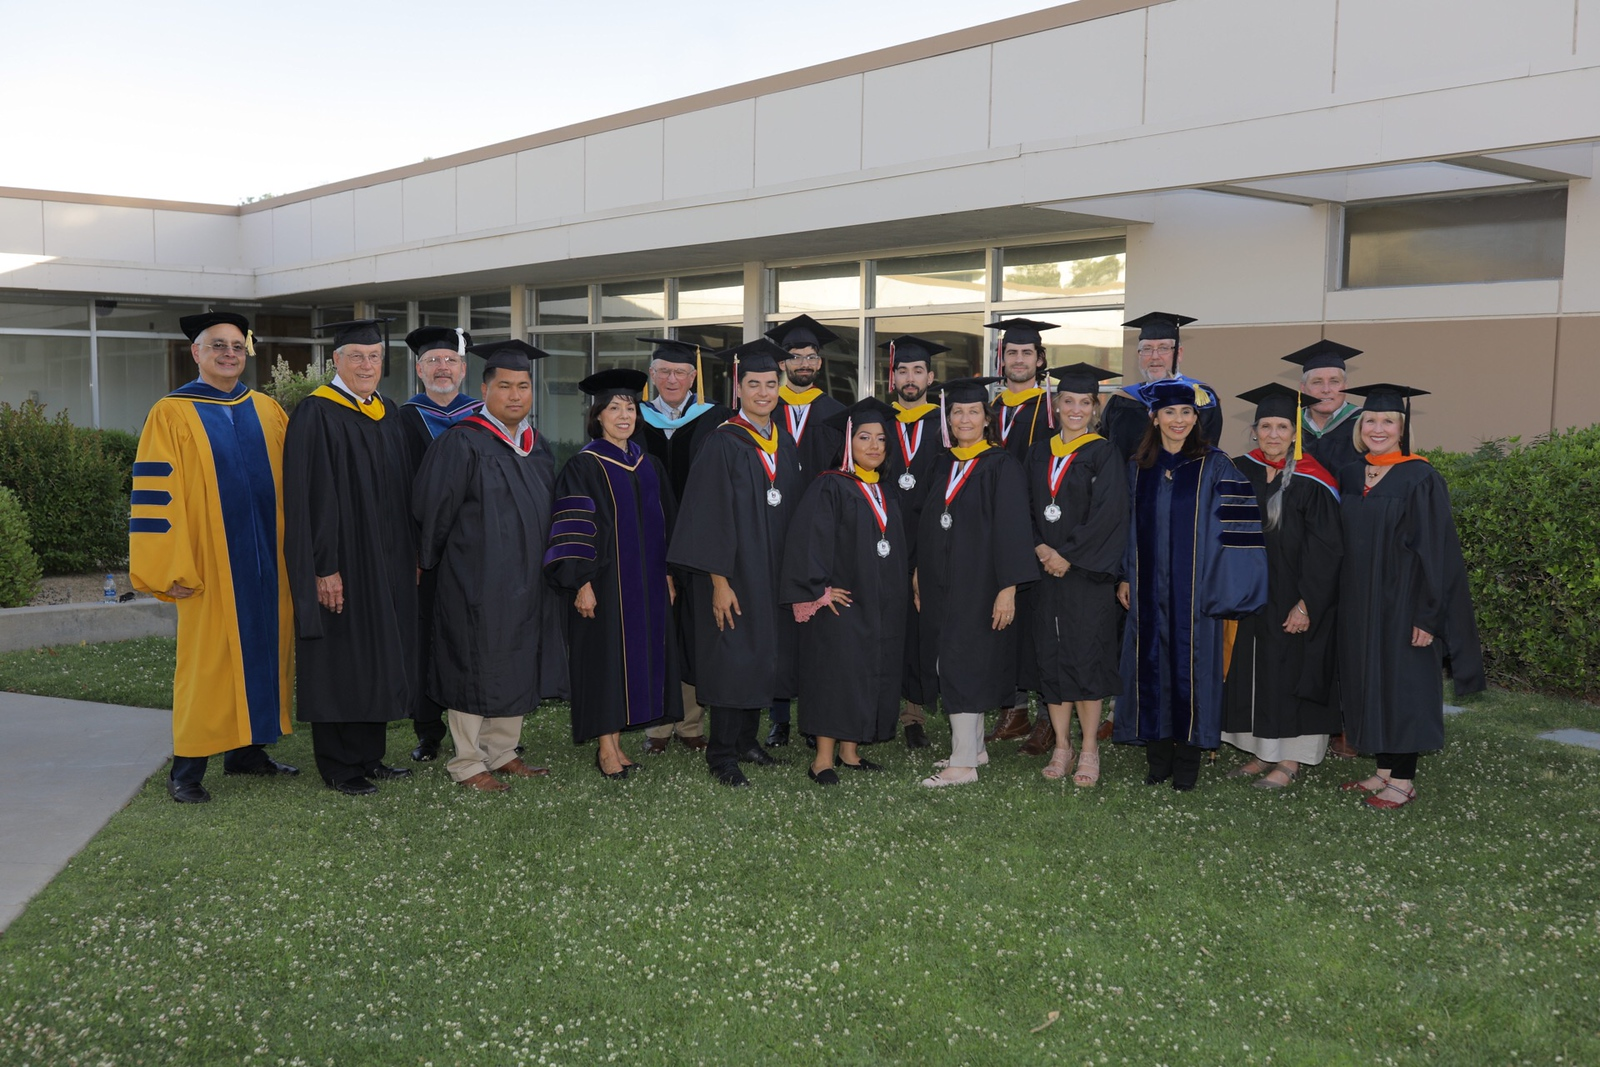 Baccalaureate students with dignitaries May 11 2018.jpg